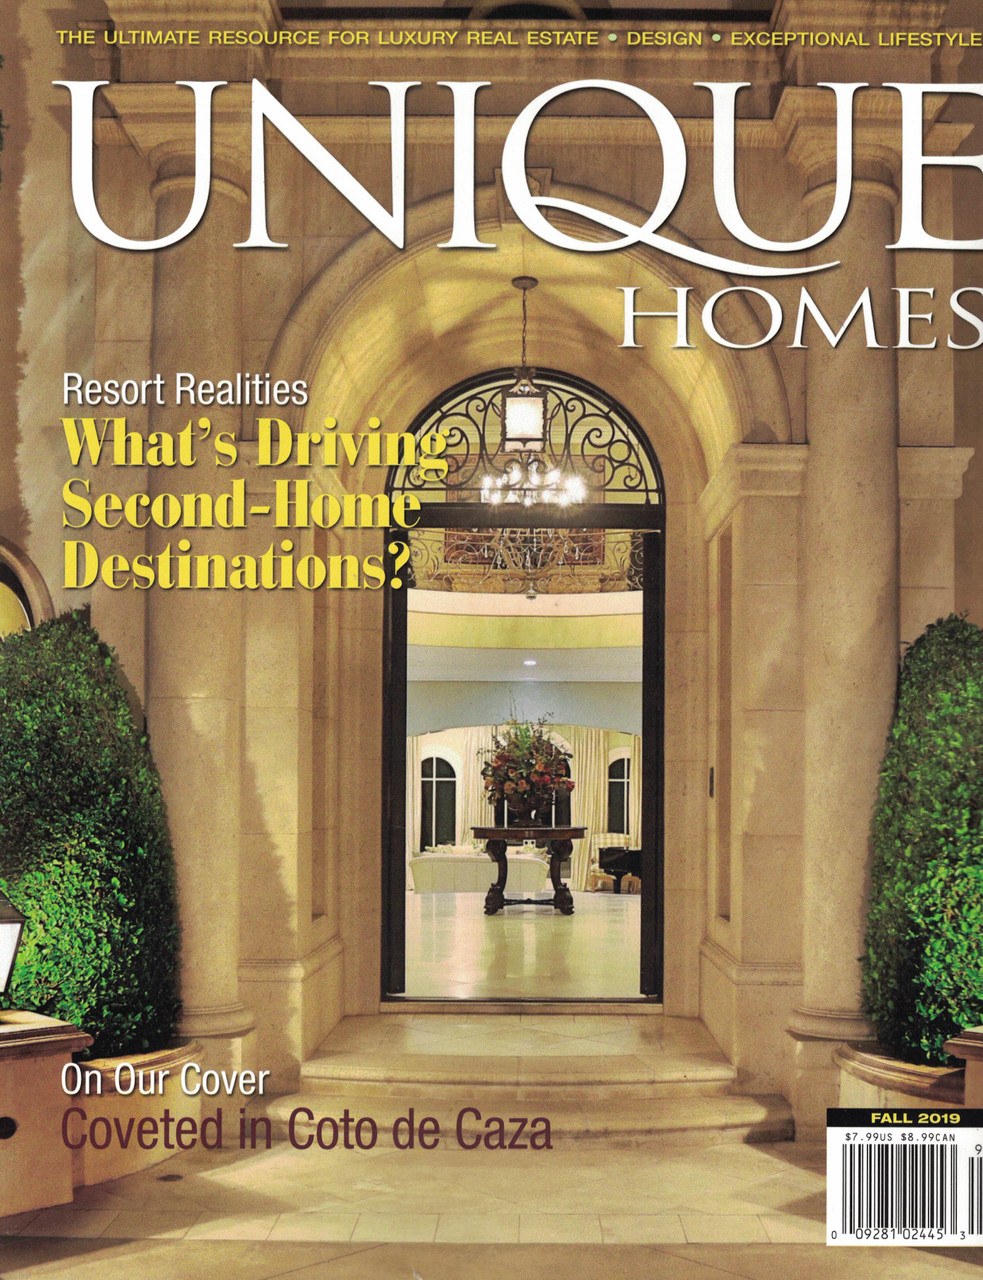 Unique Homes + Luxury Real Estate (2 mags!) - Books to Inmates